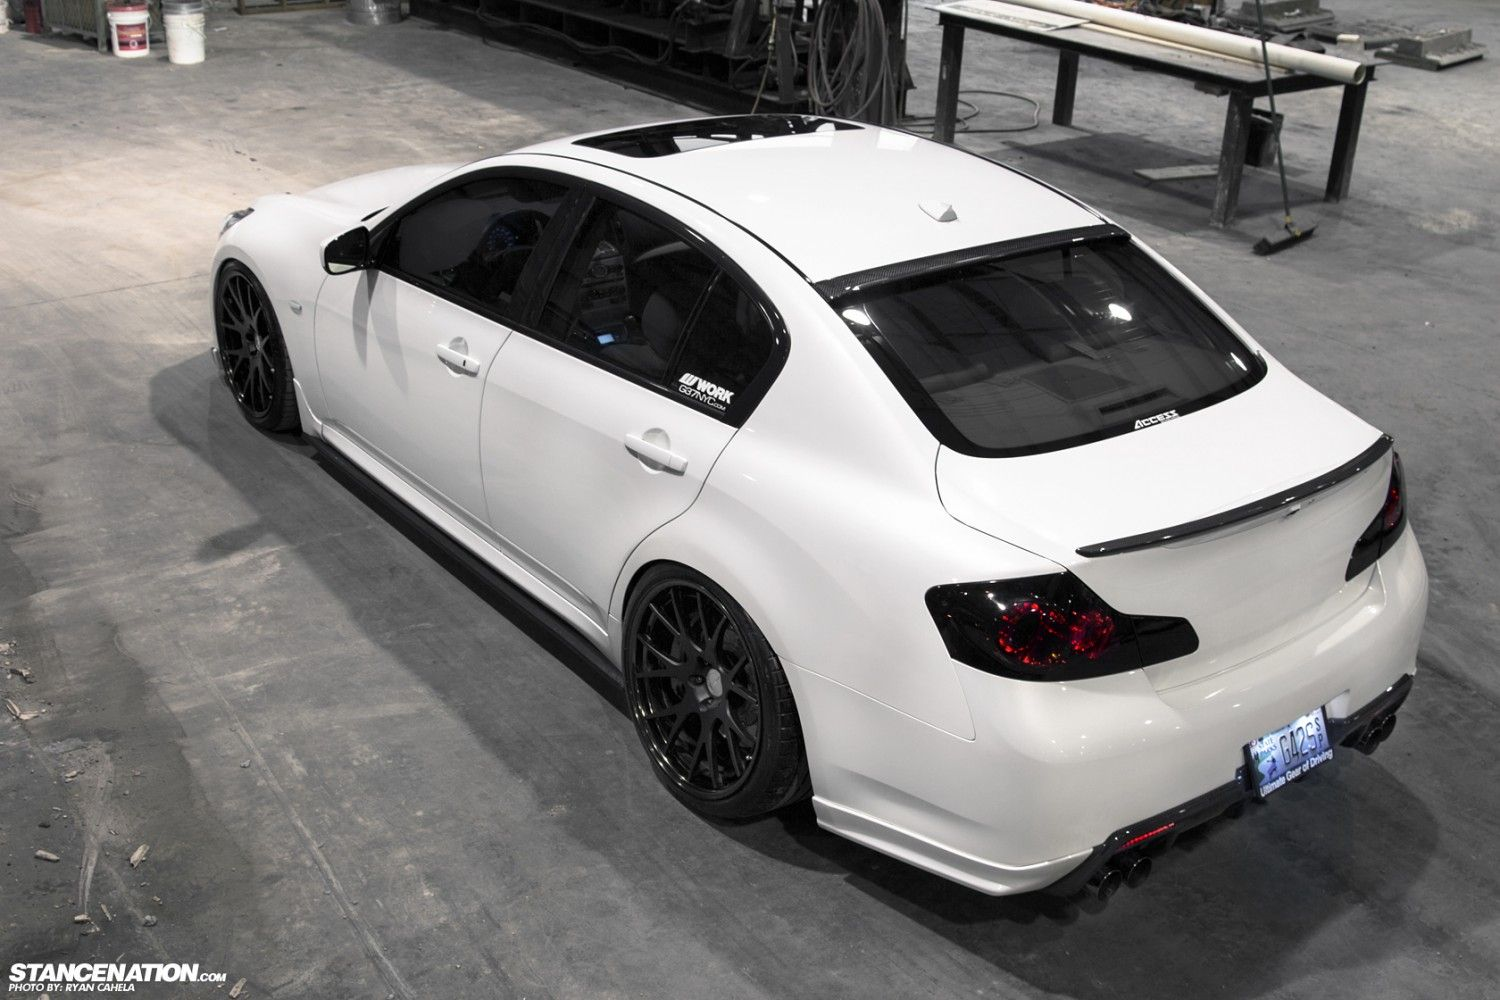 Infiniti g37 all things infiniti pinterest infiniti g37 infiniti g37 all things infiniti pinterest infiniti g37 cars and nissan vanachro Image collections